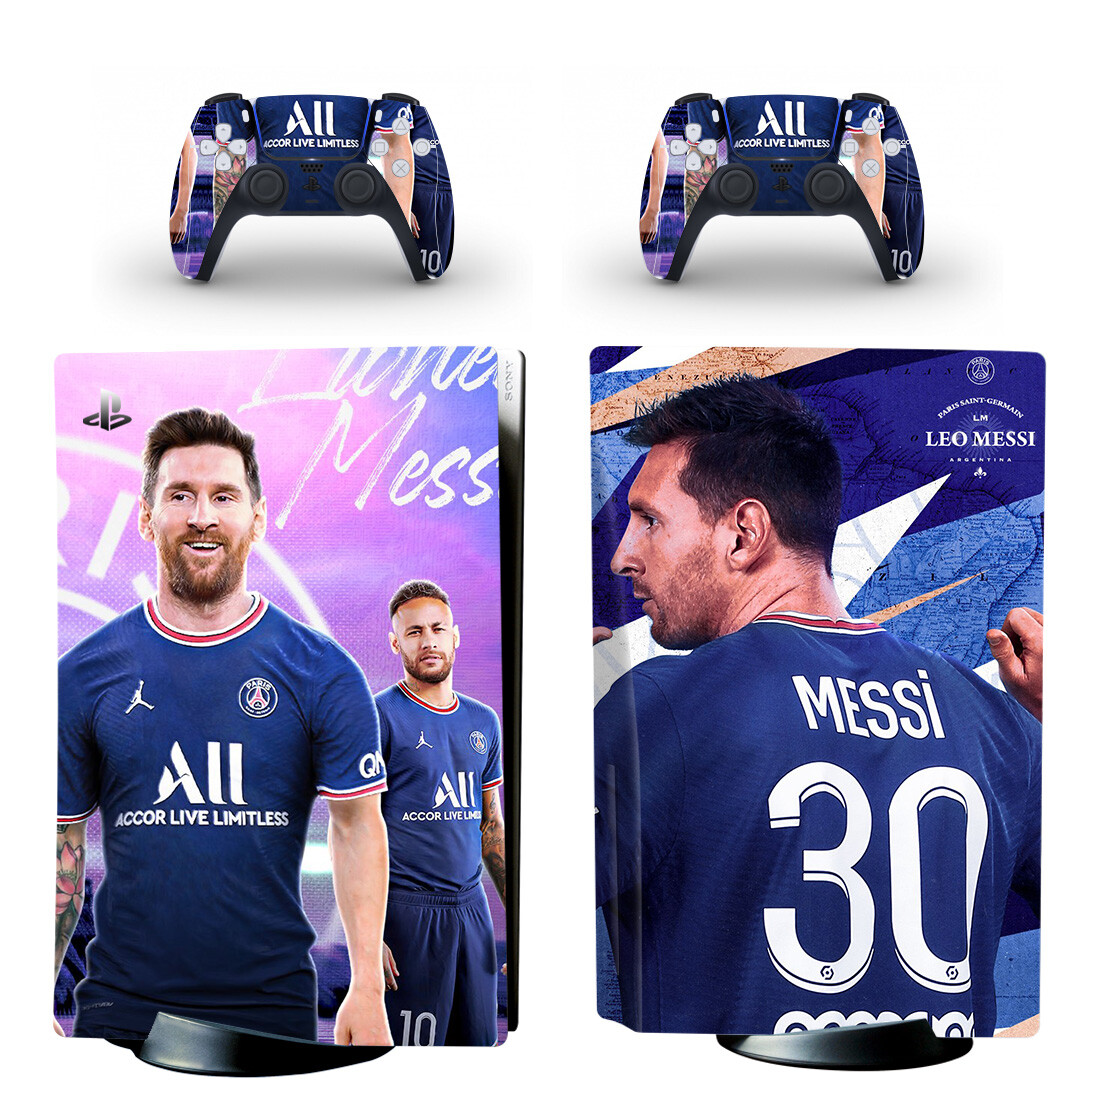 Messi In Psg Jersey Skin Sticker For PlayStation 5 And Controllers